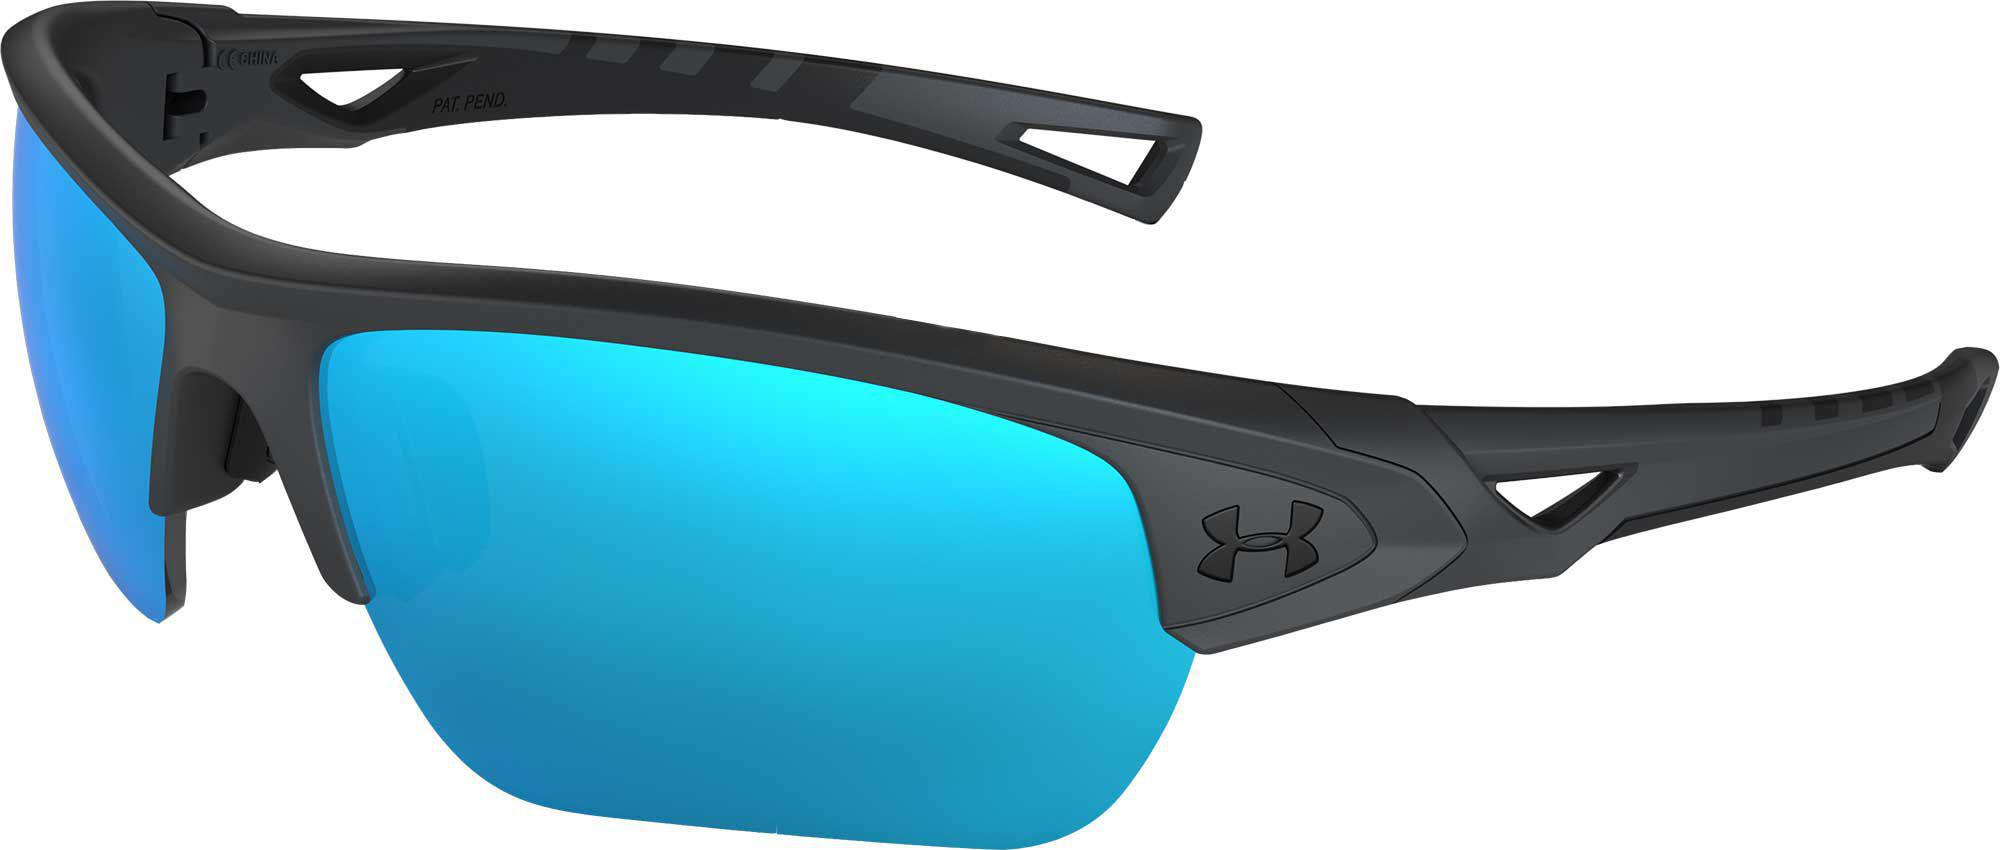 d1d4fc6a0e Lyst - Under Armour Youth Menace Tuned Baseball softball Sunglasses ...